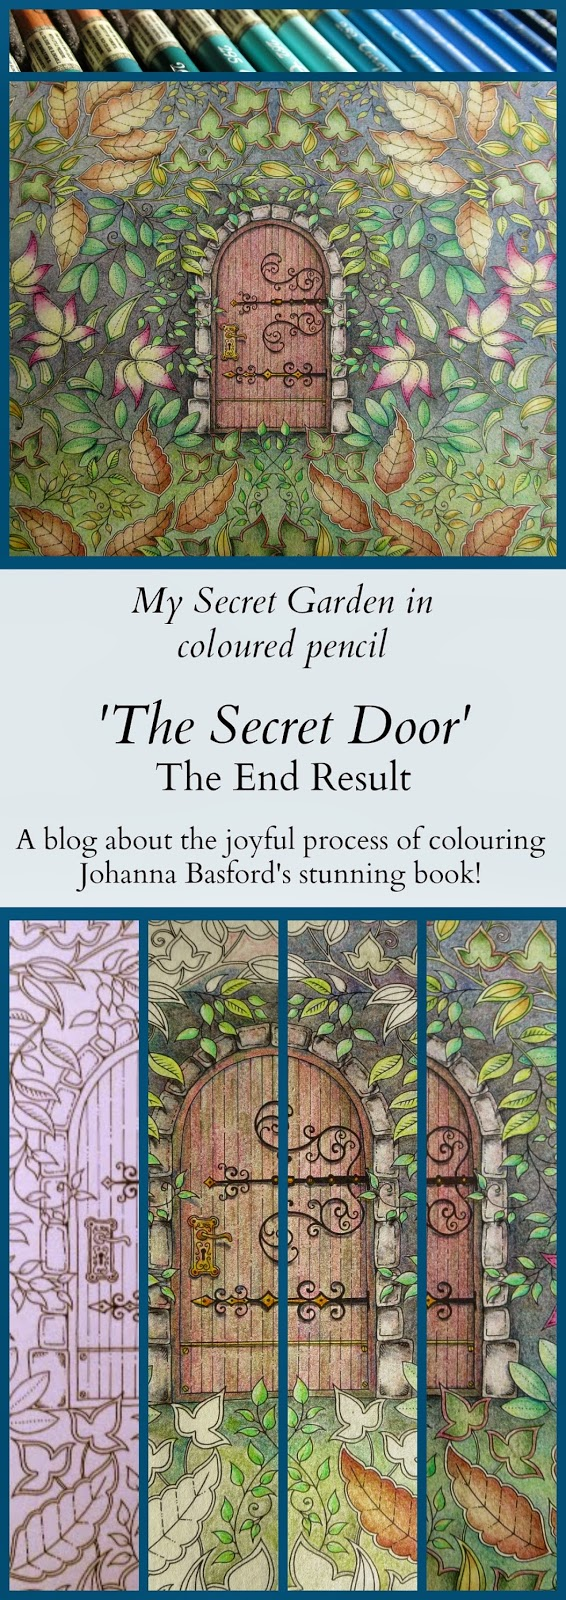 Scenic Passion For Pencils My Secret Garden Colouring Book Part  With Excellent My Secret Garden Colouring Book Part  With Beautiful Gauntlet Gardening Gloves Also Garden Hose Connector Size In Addition Itv Love Your Garden And Garden Swing Seat Covers As Well As Secret Garden Publishing Additionally Garden Flower Arch From Passionforpencilsblogspotcom With   Excellent Passion For Pencils My Secret Garden Colouring Book Part  With Beautiful My Secret Garden Colouring Book Part  And Scenic Gauntlet Gardening Gloves Also Garden Hose Connector Size In Addition Itv Love Your Garden From Passionforpencilsblogspotcom